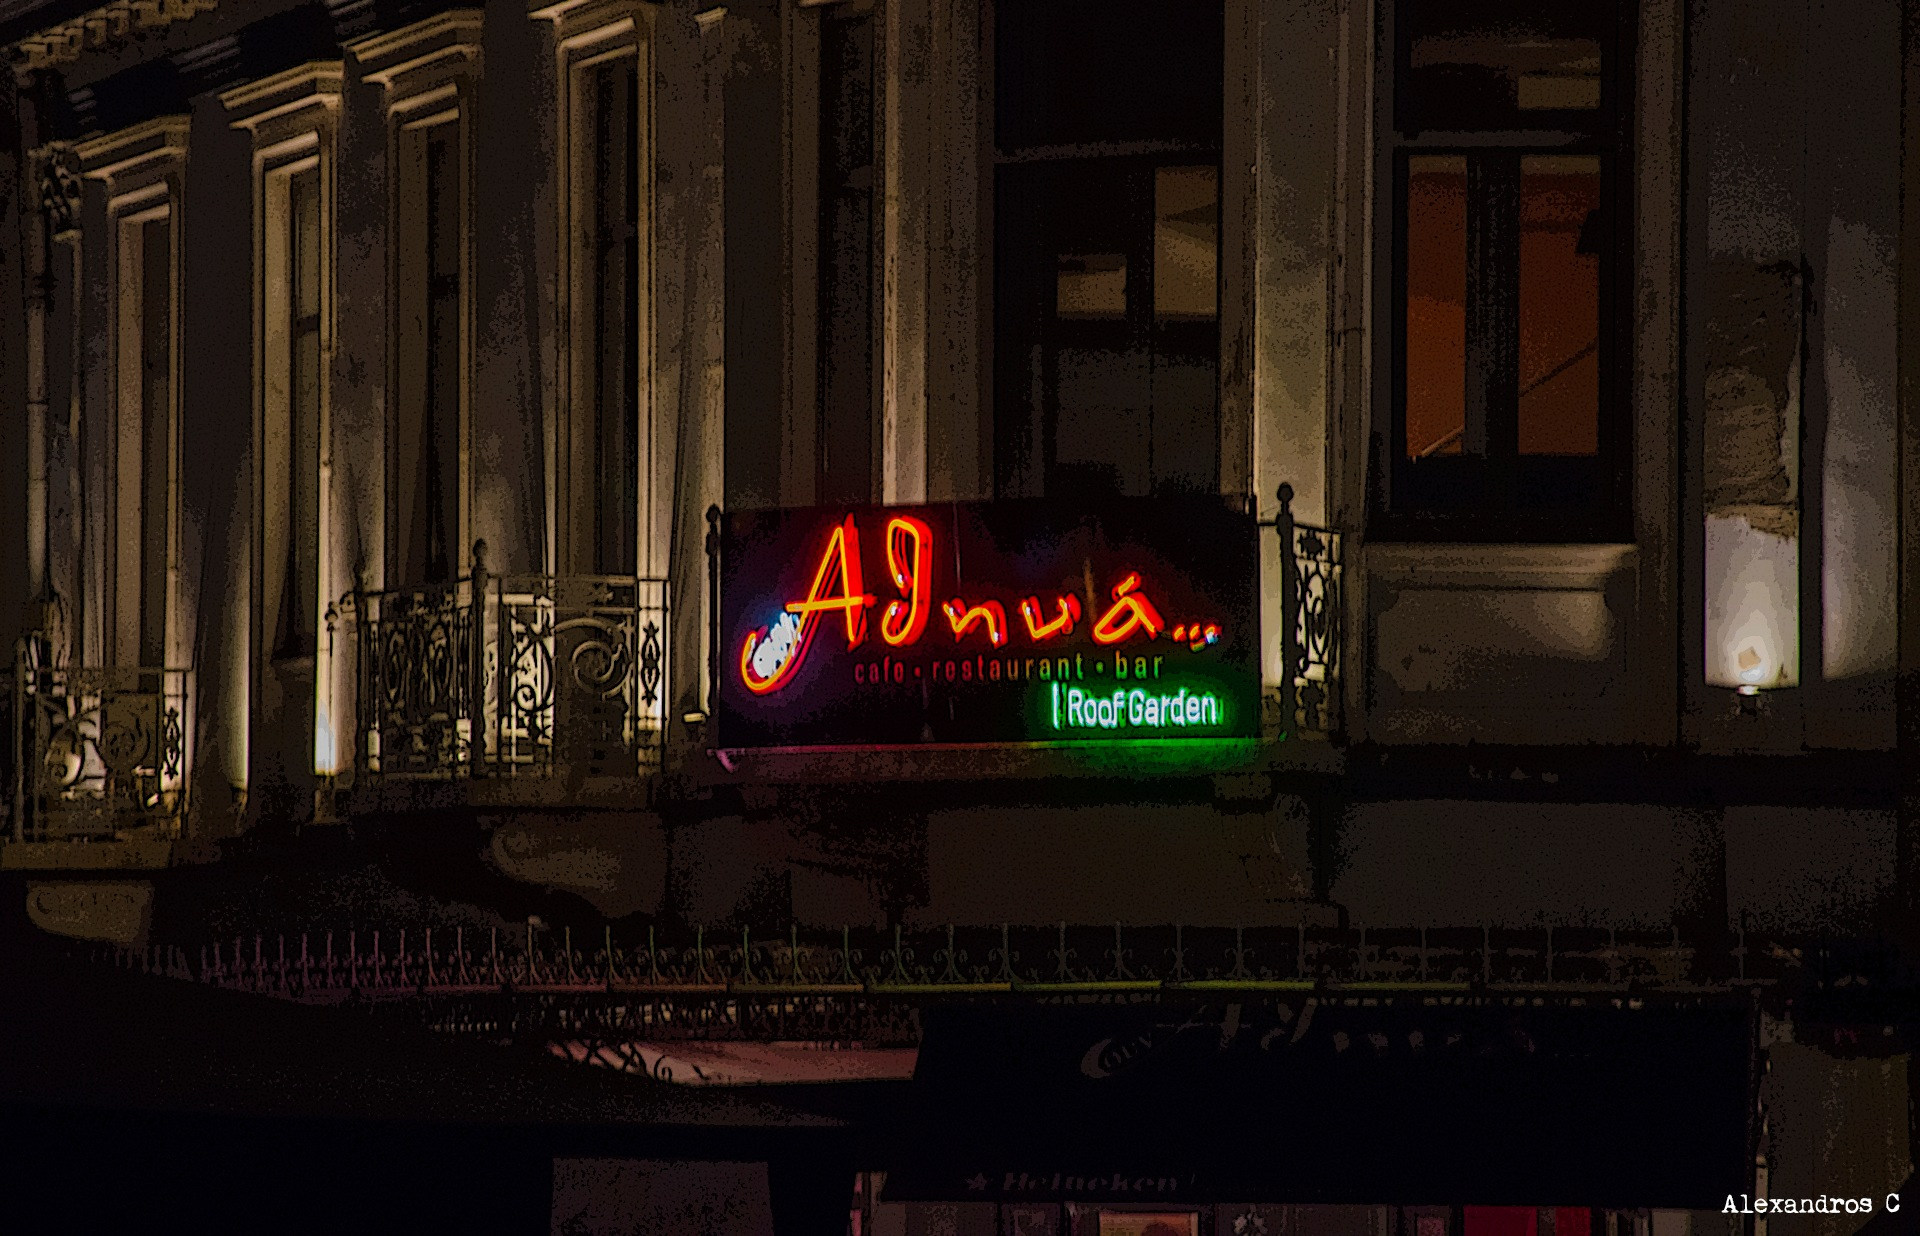 Greetings from Athens by Alexandros C